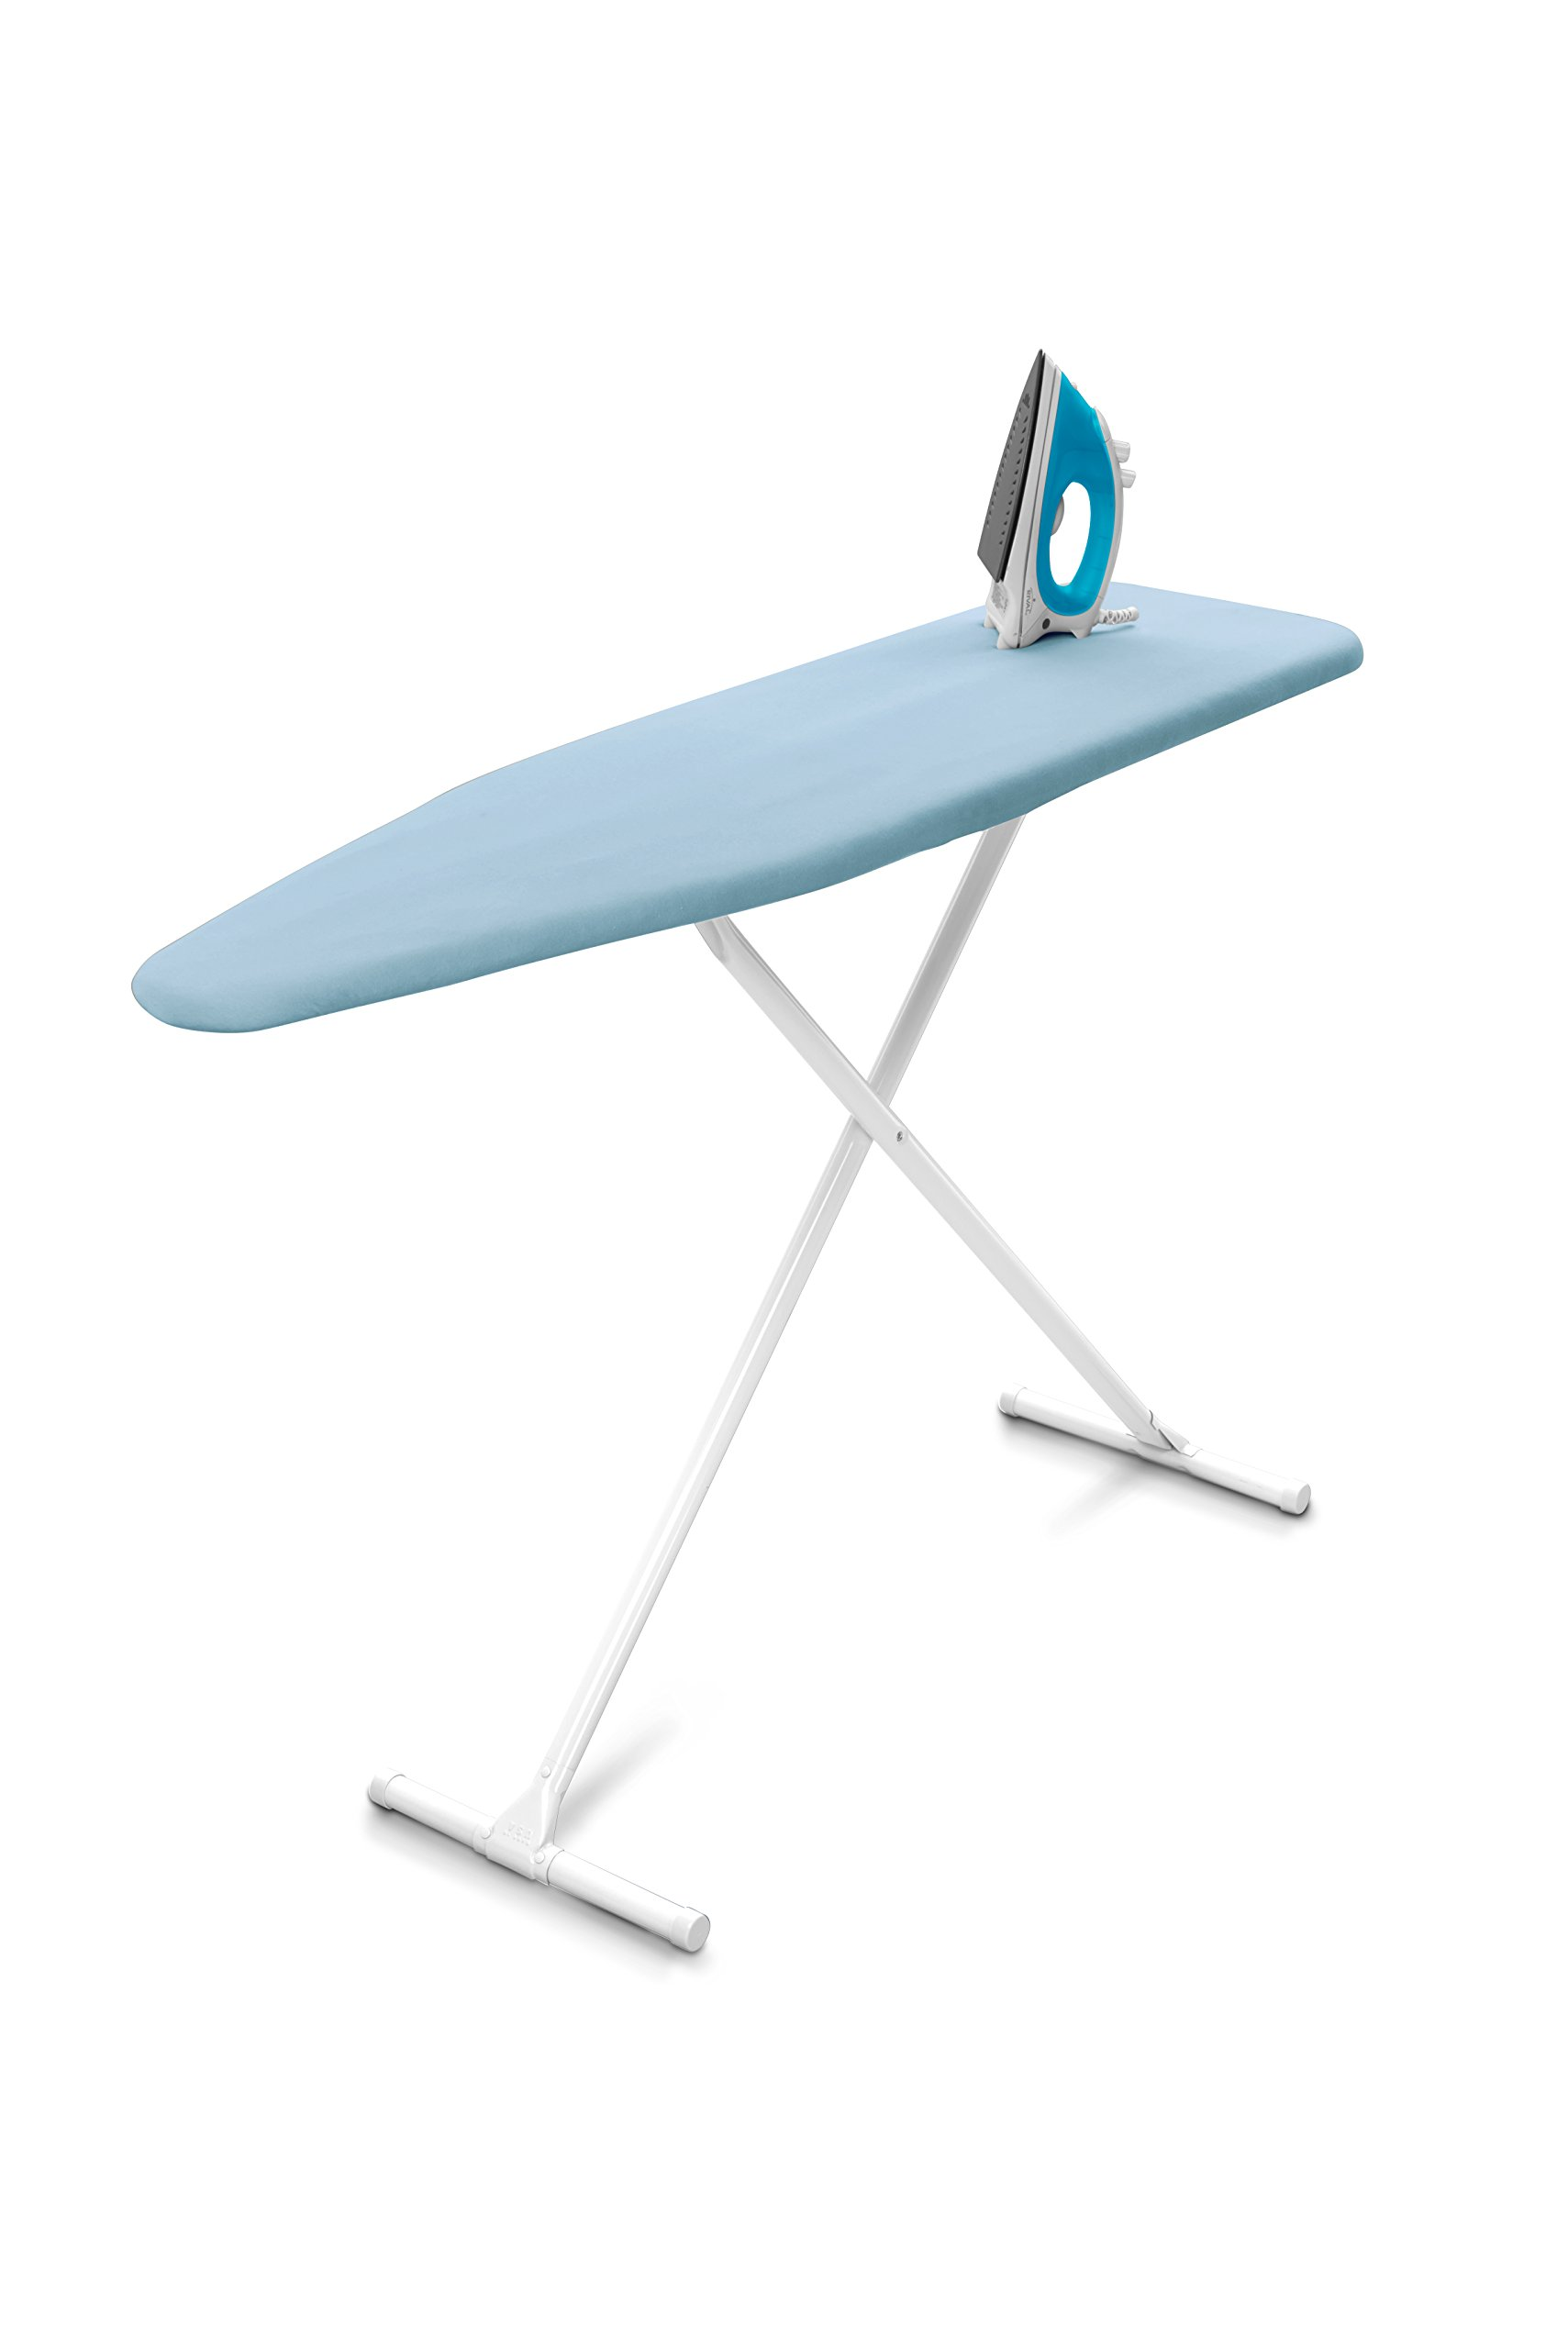 Homz T-Leg Steel Top Ironing Board with Foam Pad, Sky Blue Cover by Homz